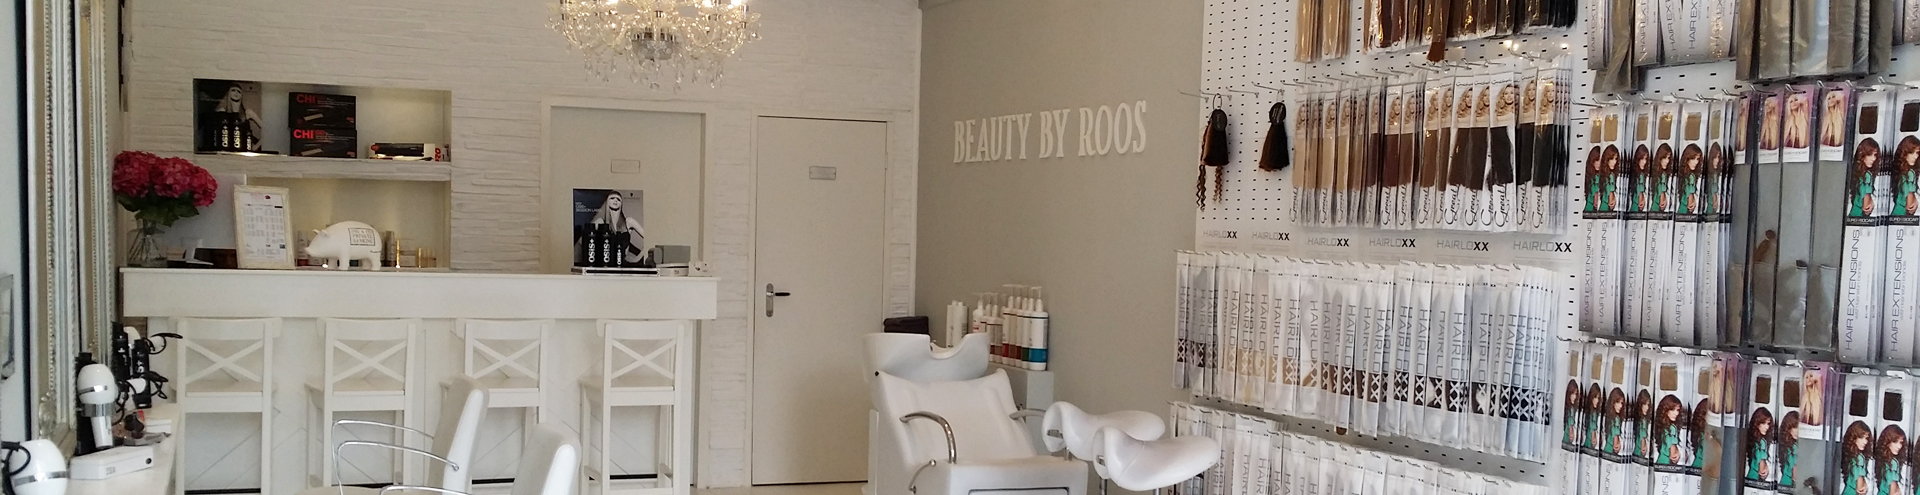 Salon Den Bosch Beauty by Roos Hairextensions